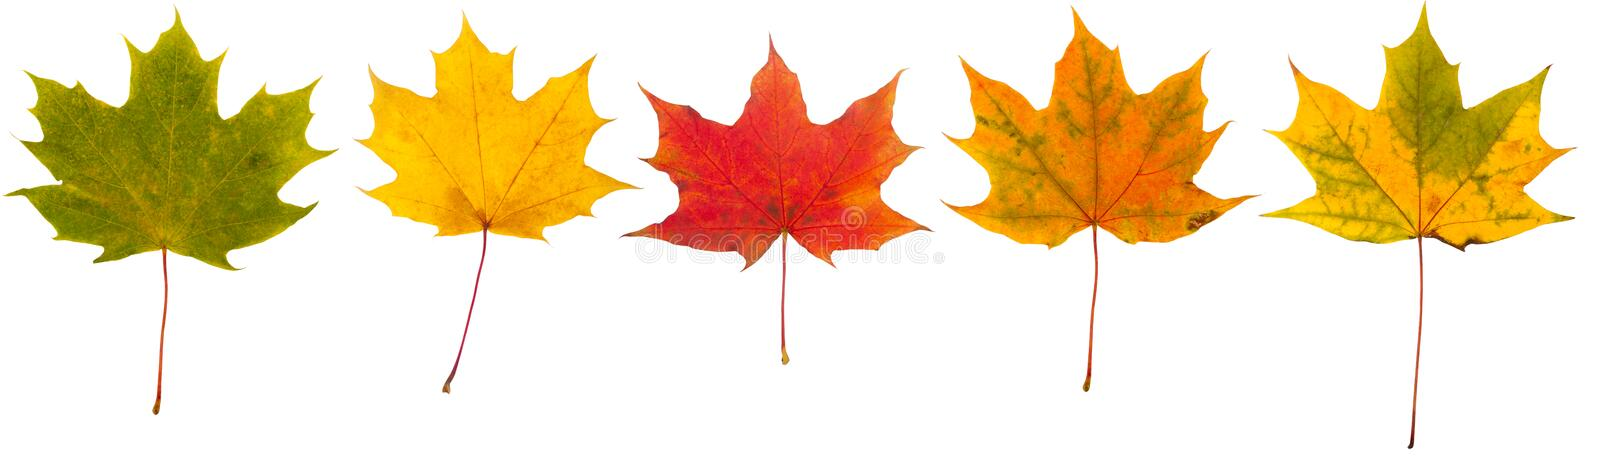 Download Autumn leaves collection stock photo. Image of flora - 21347752